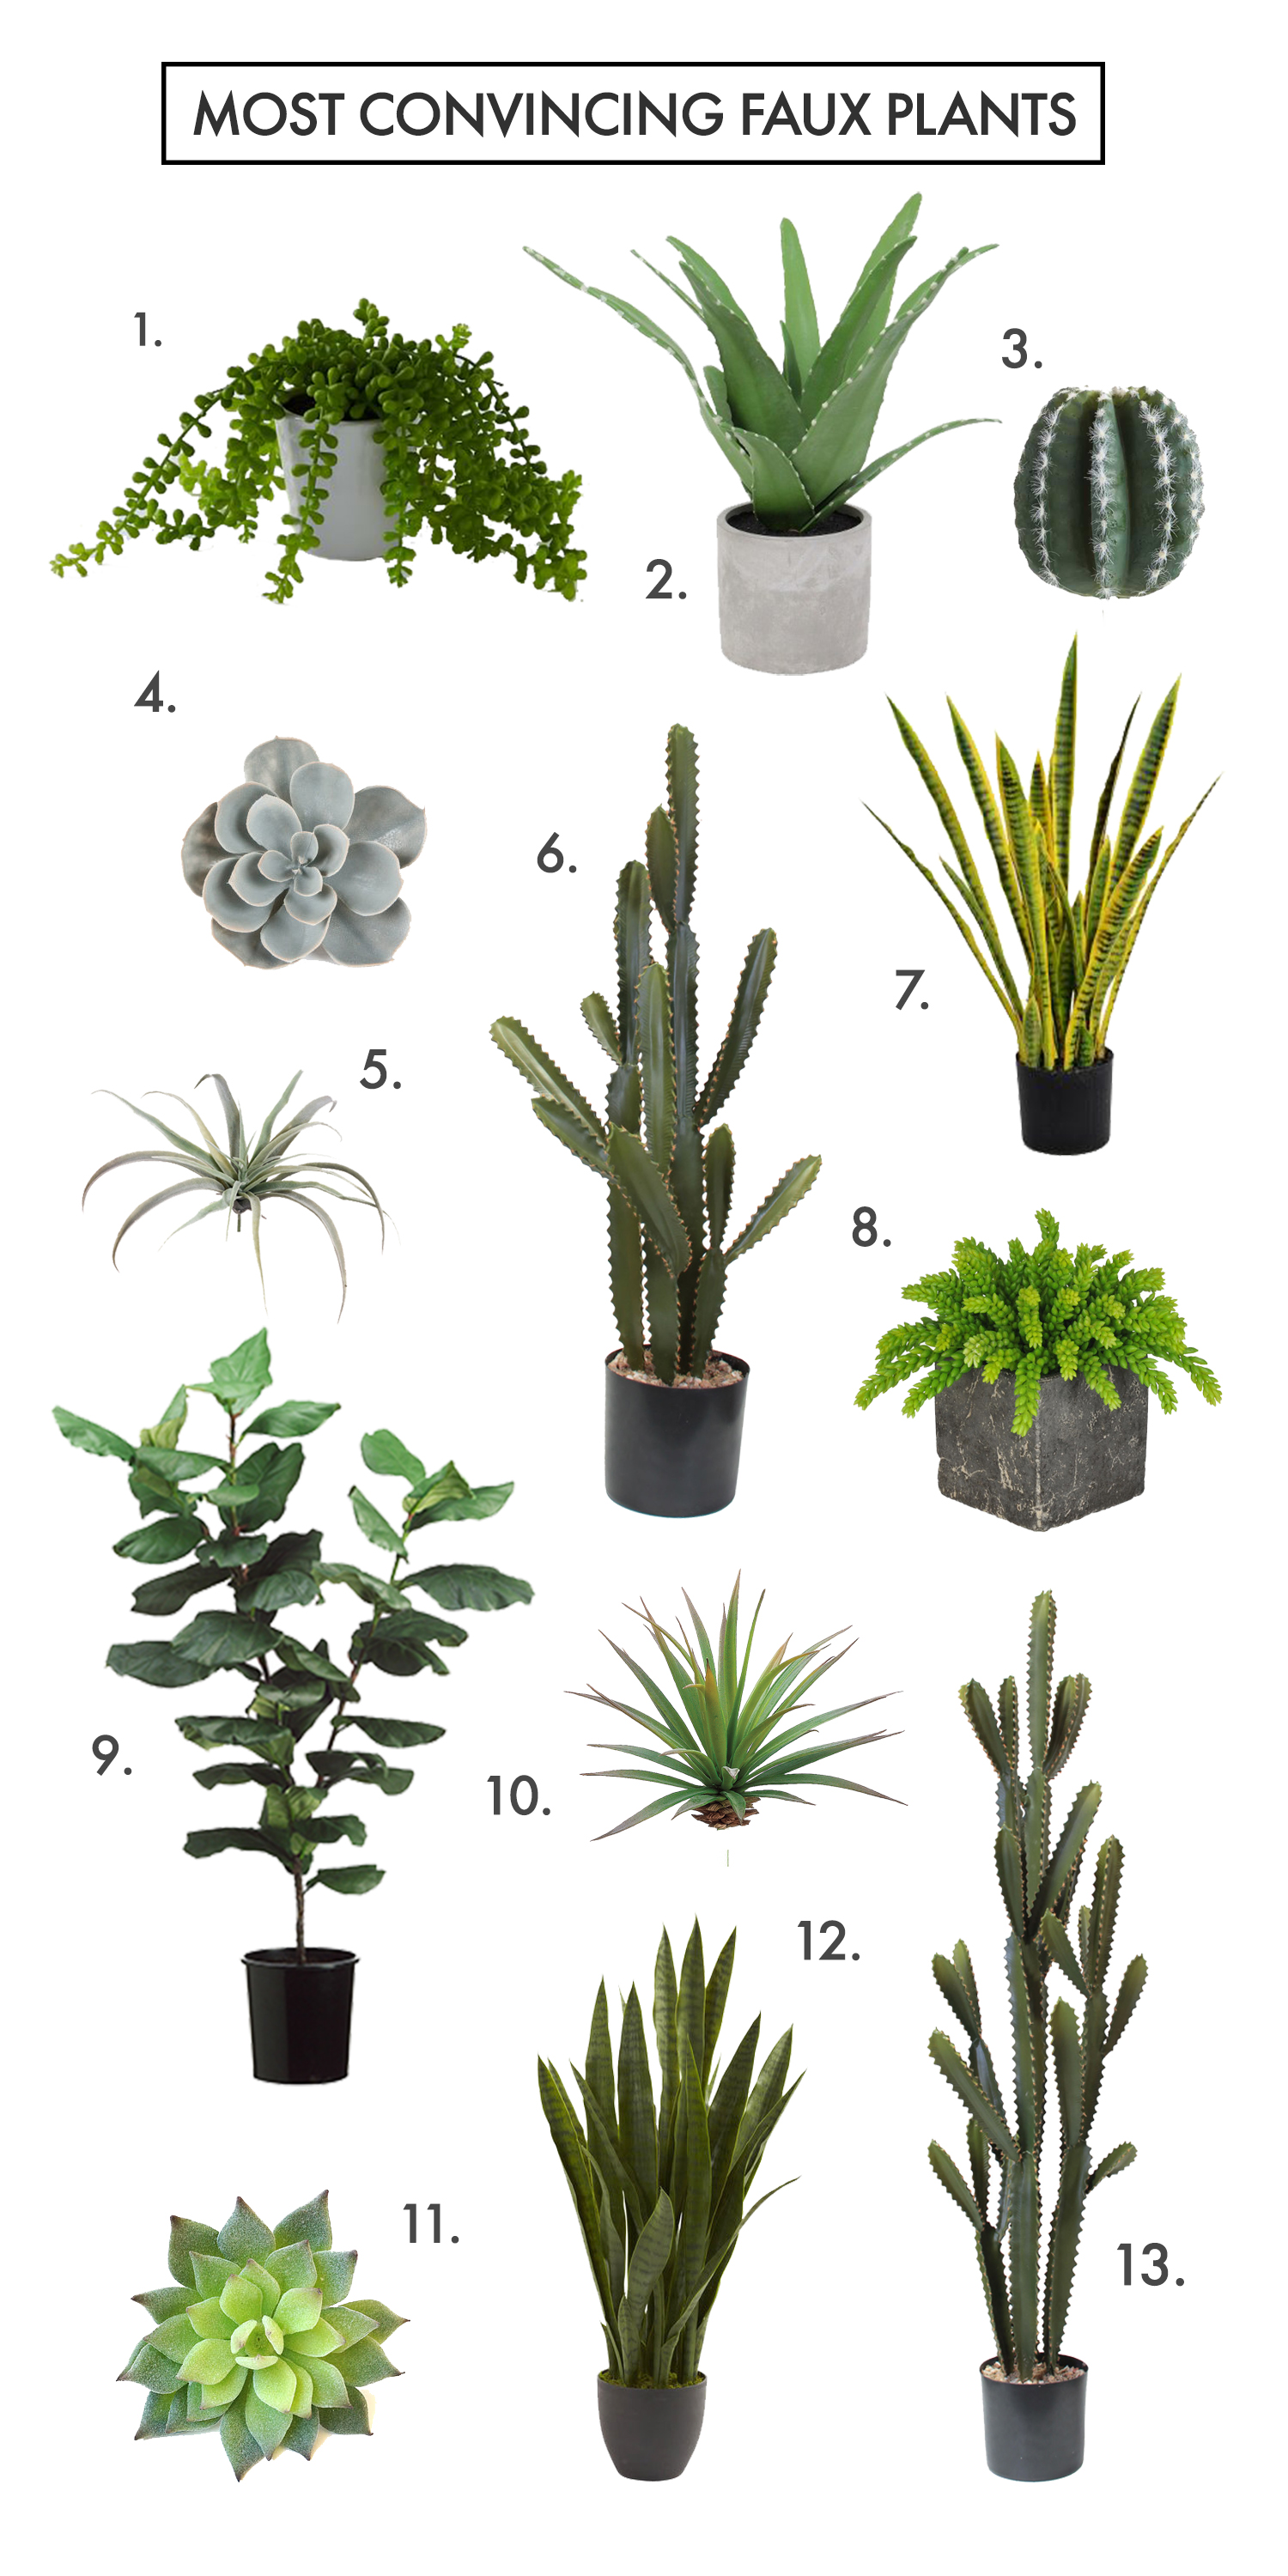 are you faux real? how to find the most convincing faux plants! - a